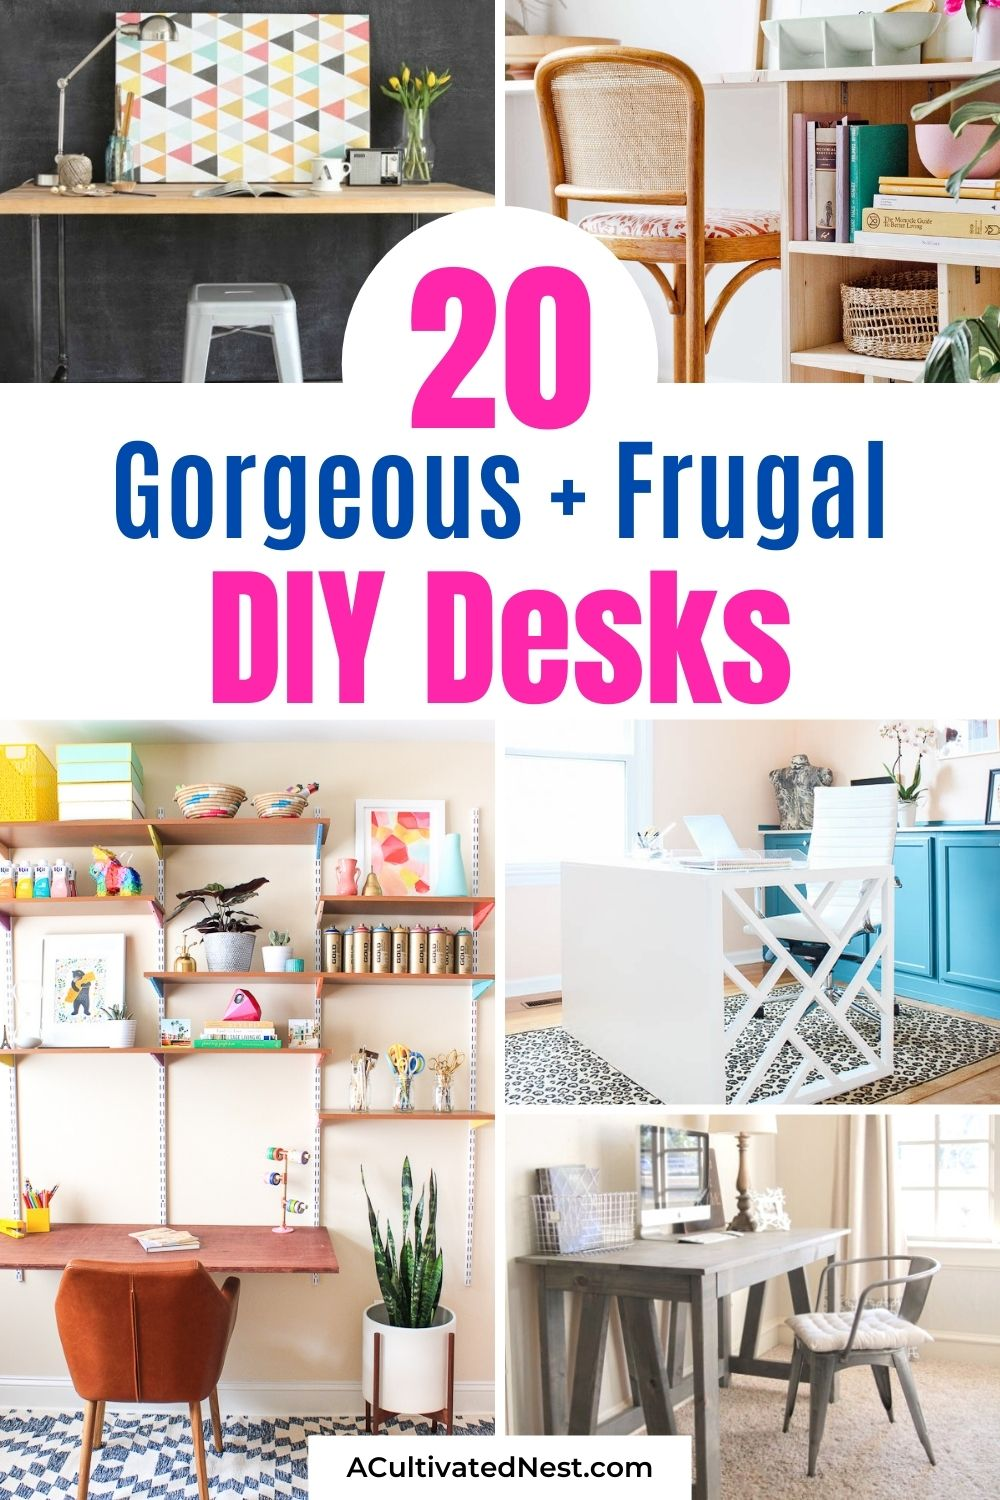 20 Charming DIY Desks You Can Make- Save money and get the desk of your dreams with these 20 gorgeous DIY desks you can make! They're wonderful for an office, bedroom, or even a large closet! | #homemadeFurniture #diyDesk #homeOffice #diyFurniture #ACultivatedNest